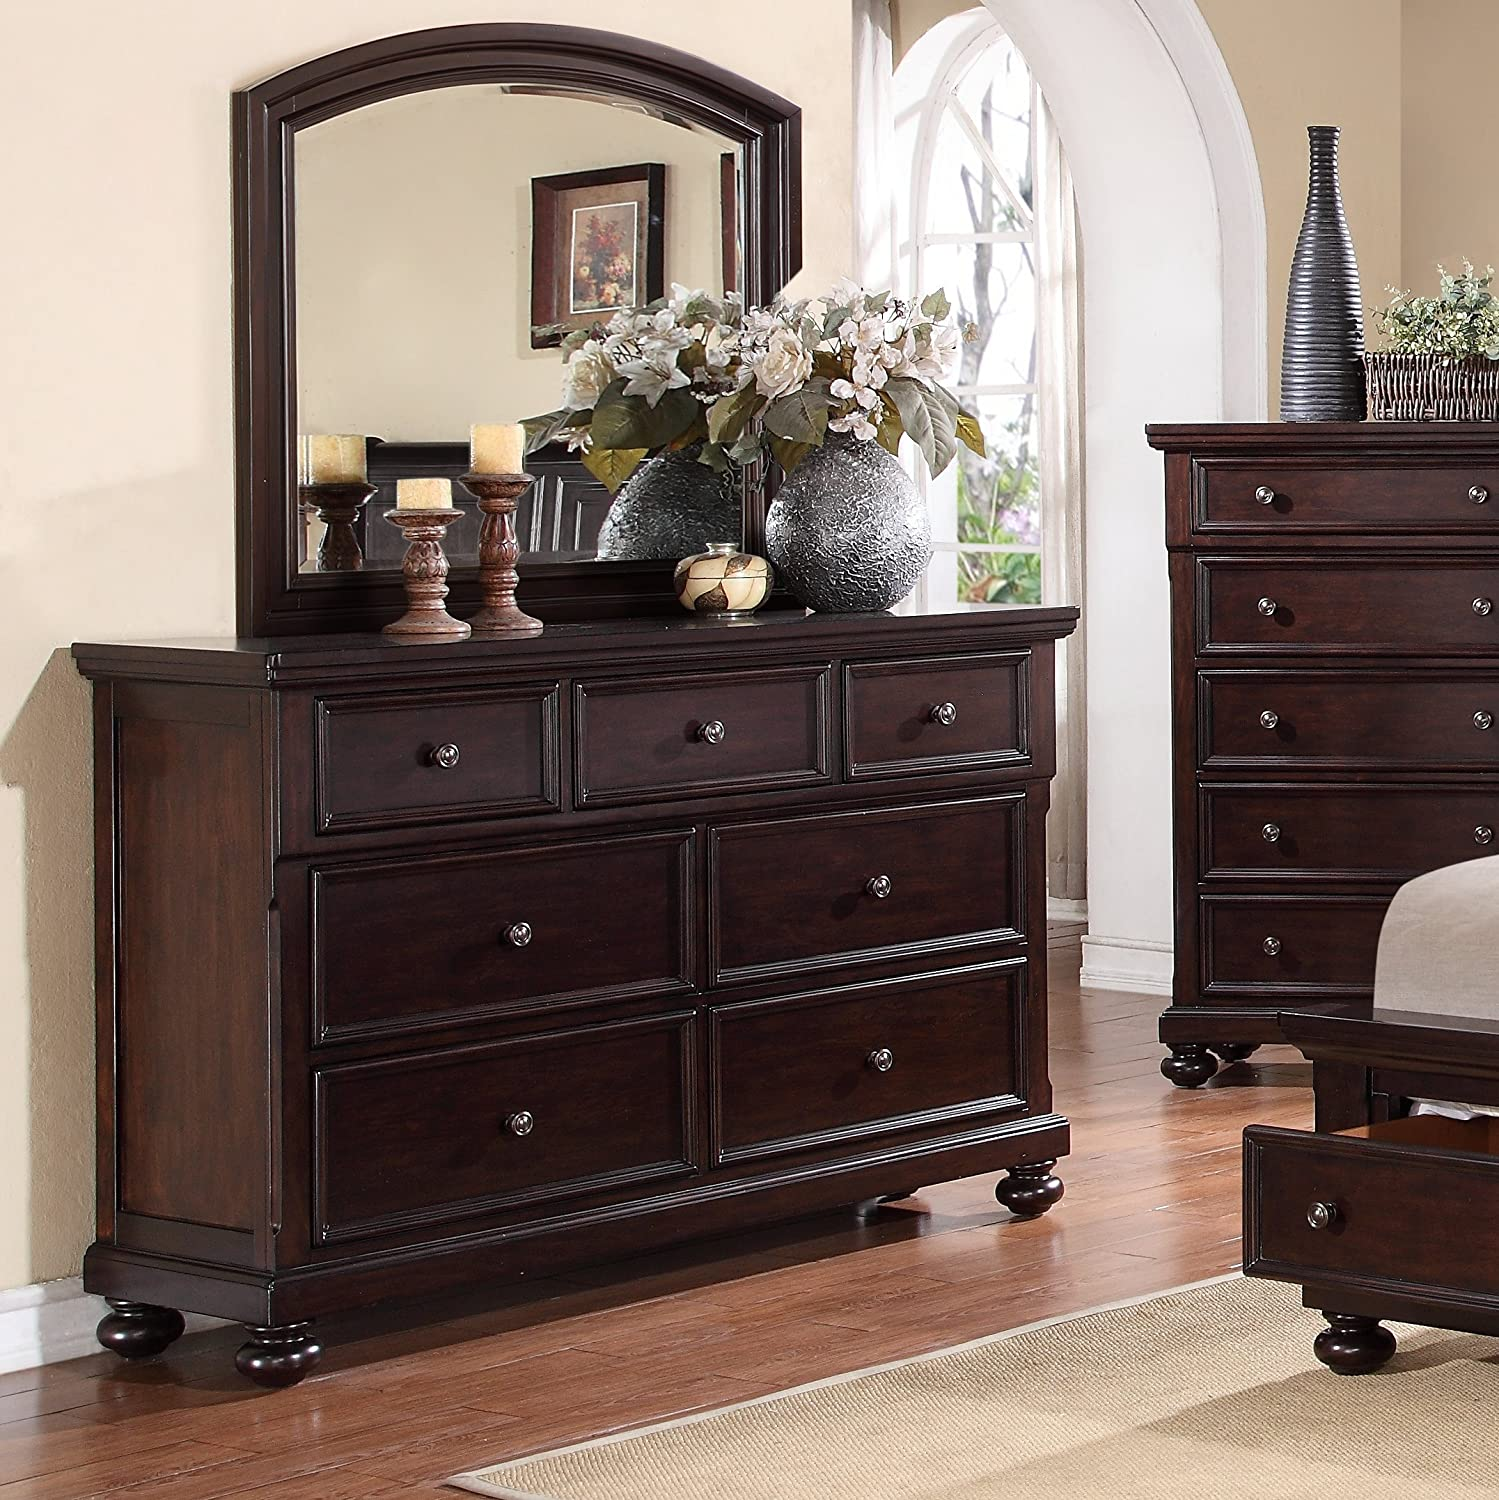 bedroom casana and montreal dresser furniture mirror with